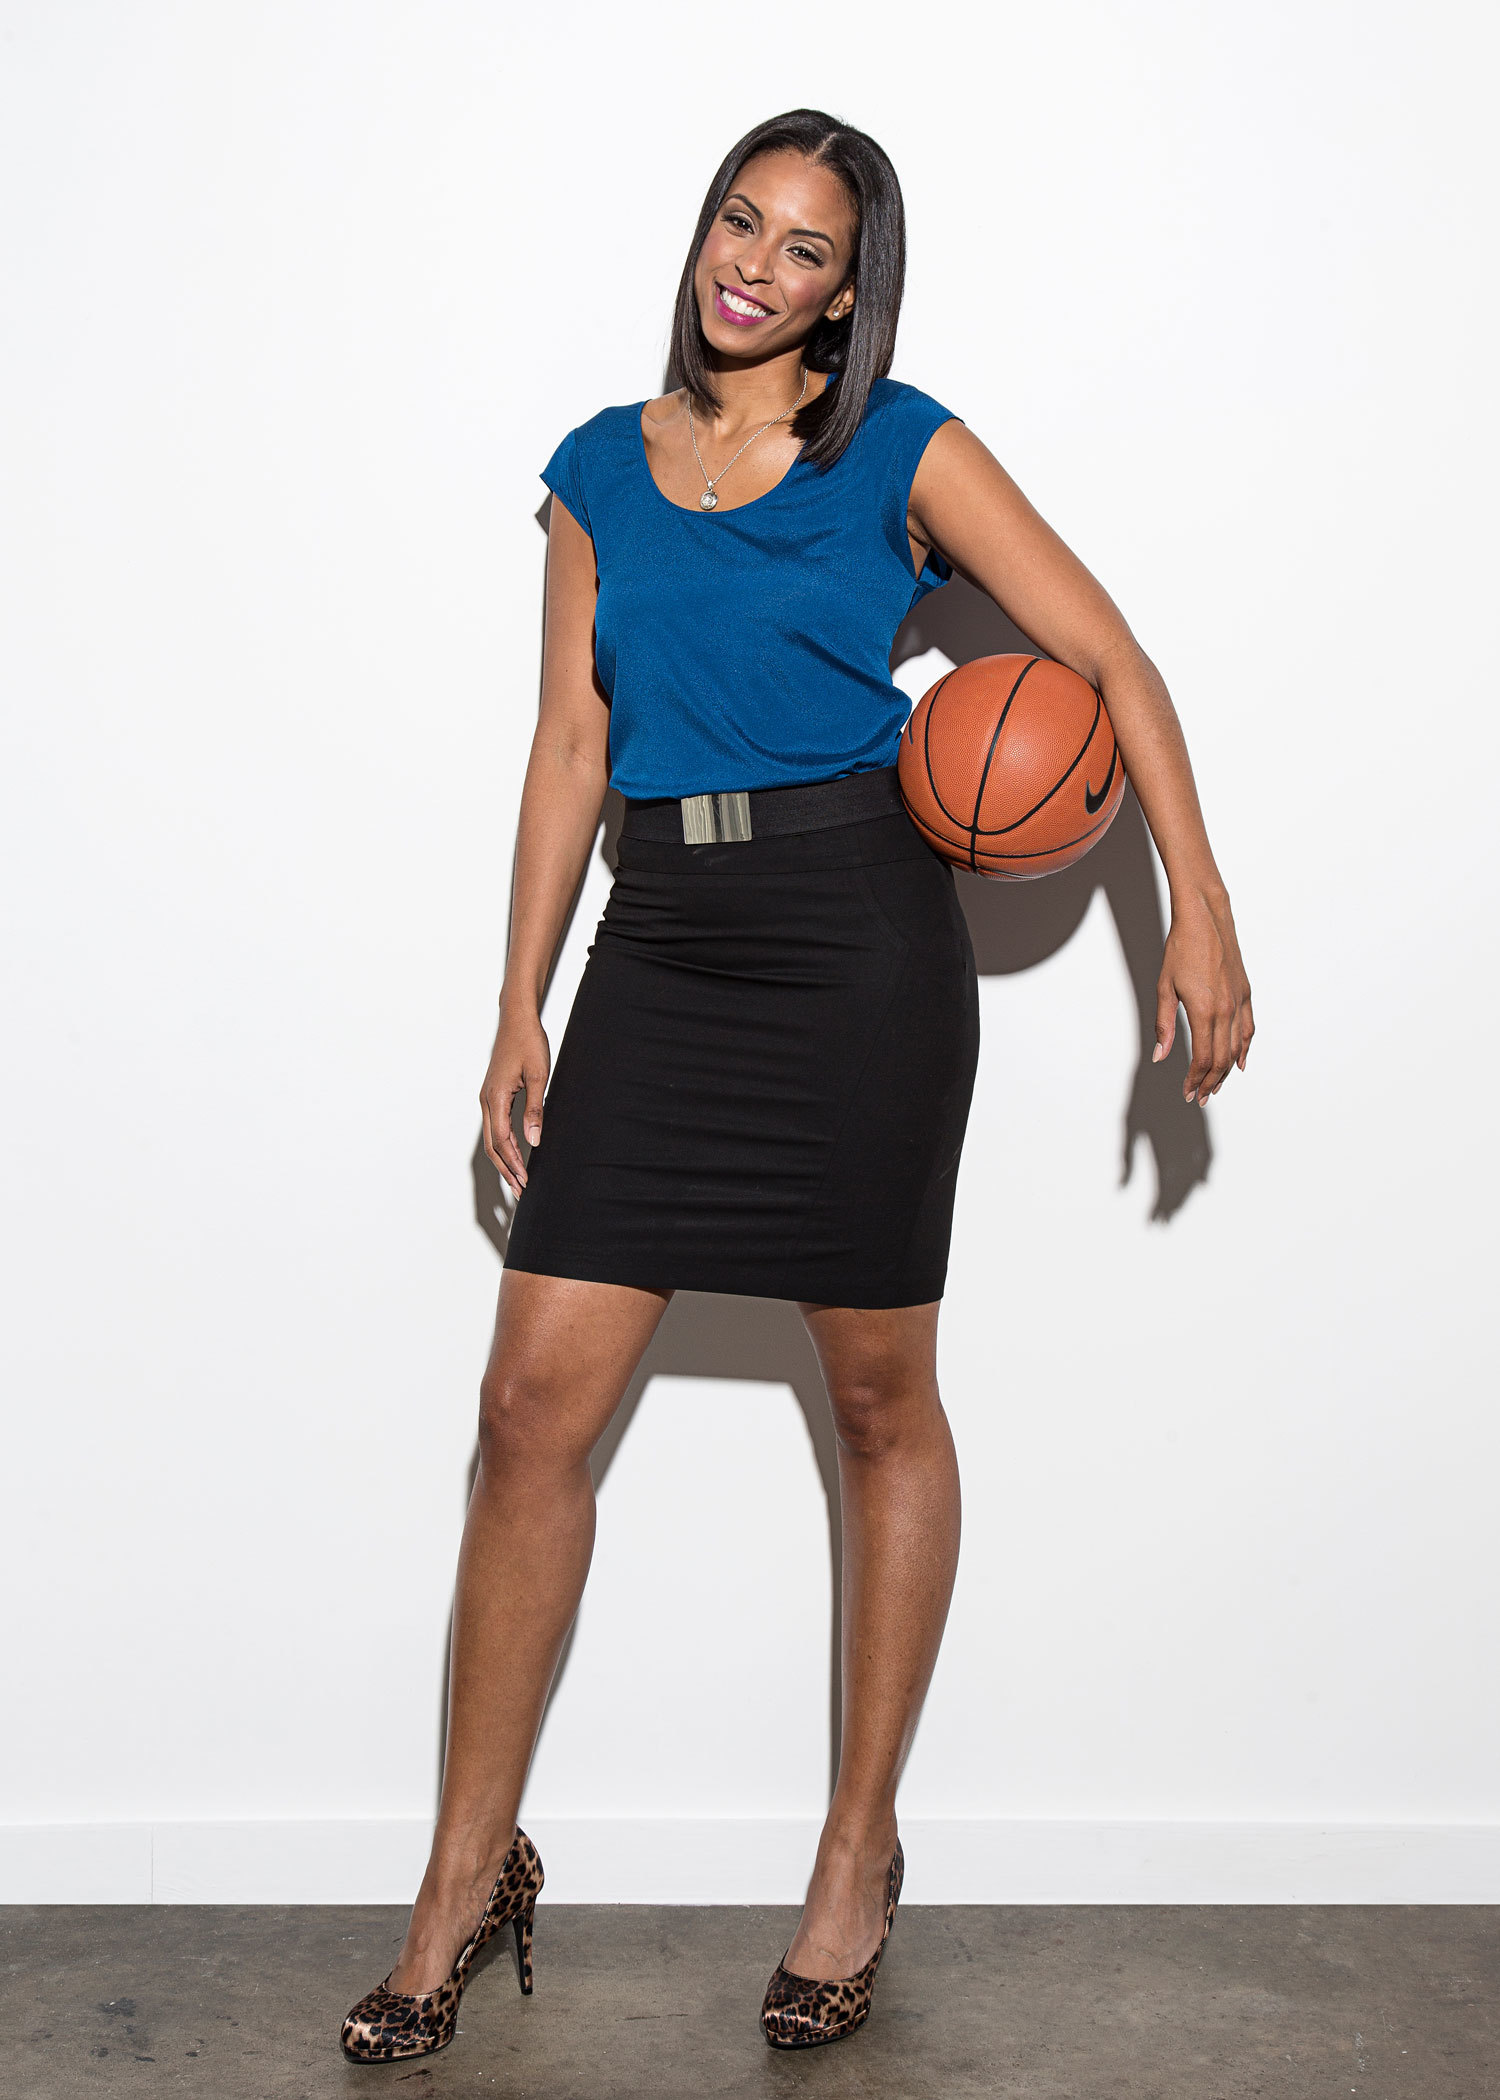 LaChina Robinson Wants to Be the Voice of Women's ...